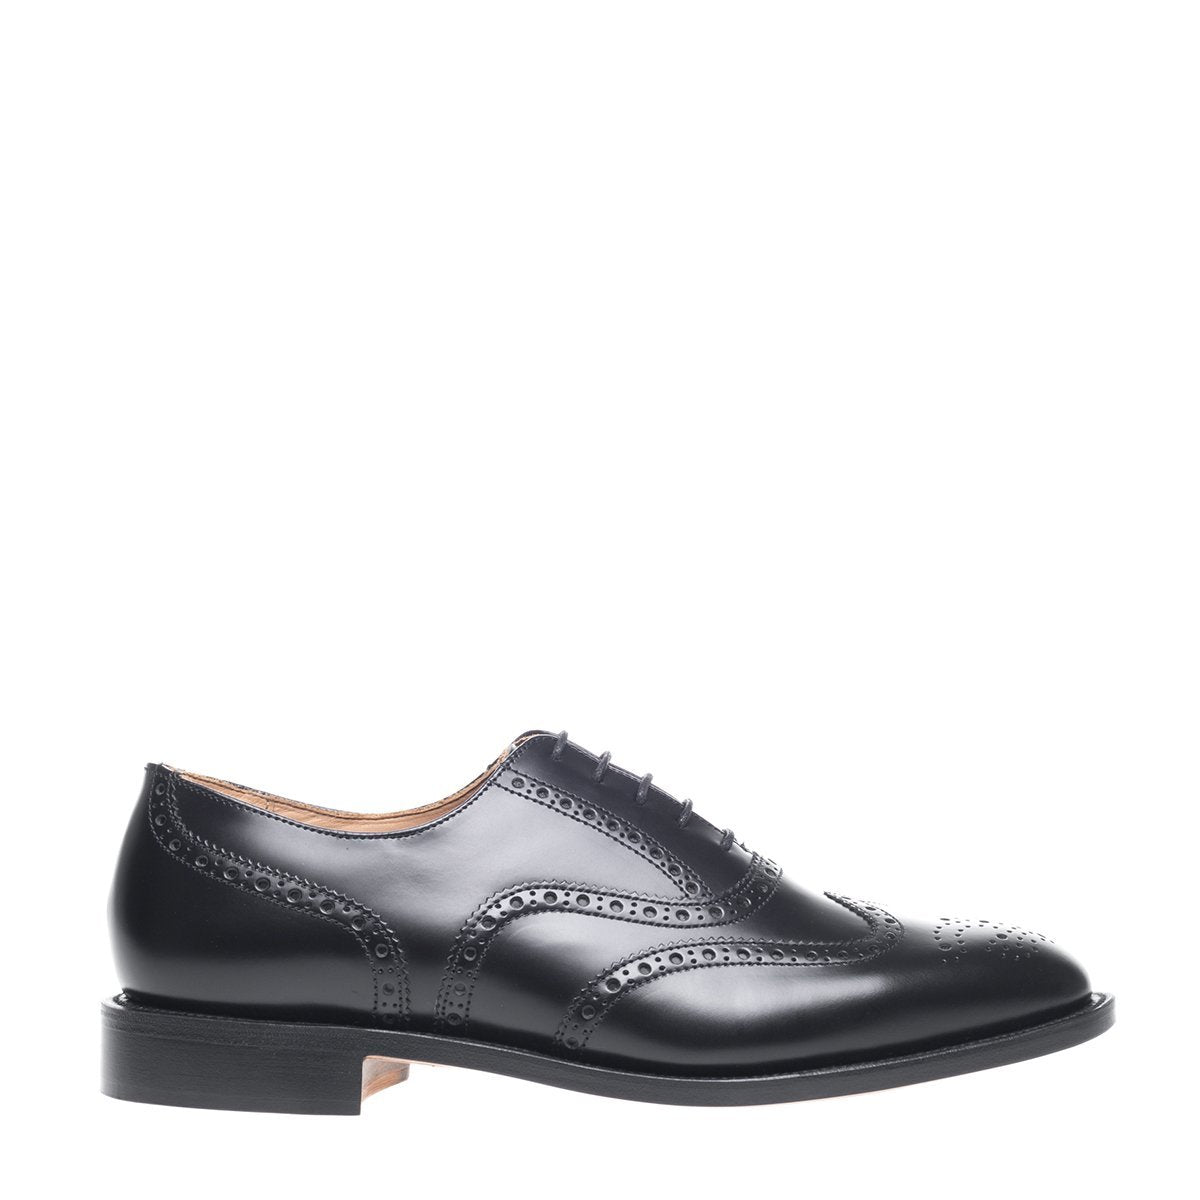 NPS Churchill Essential Oxford Brogue - Black Hi-Shine